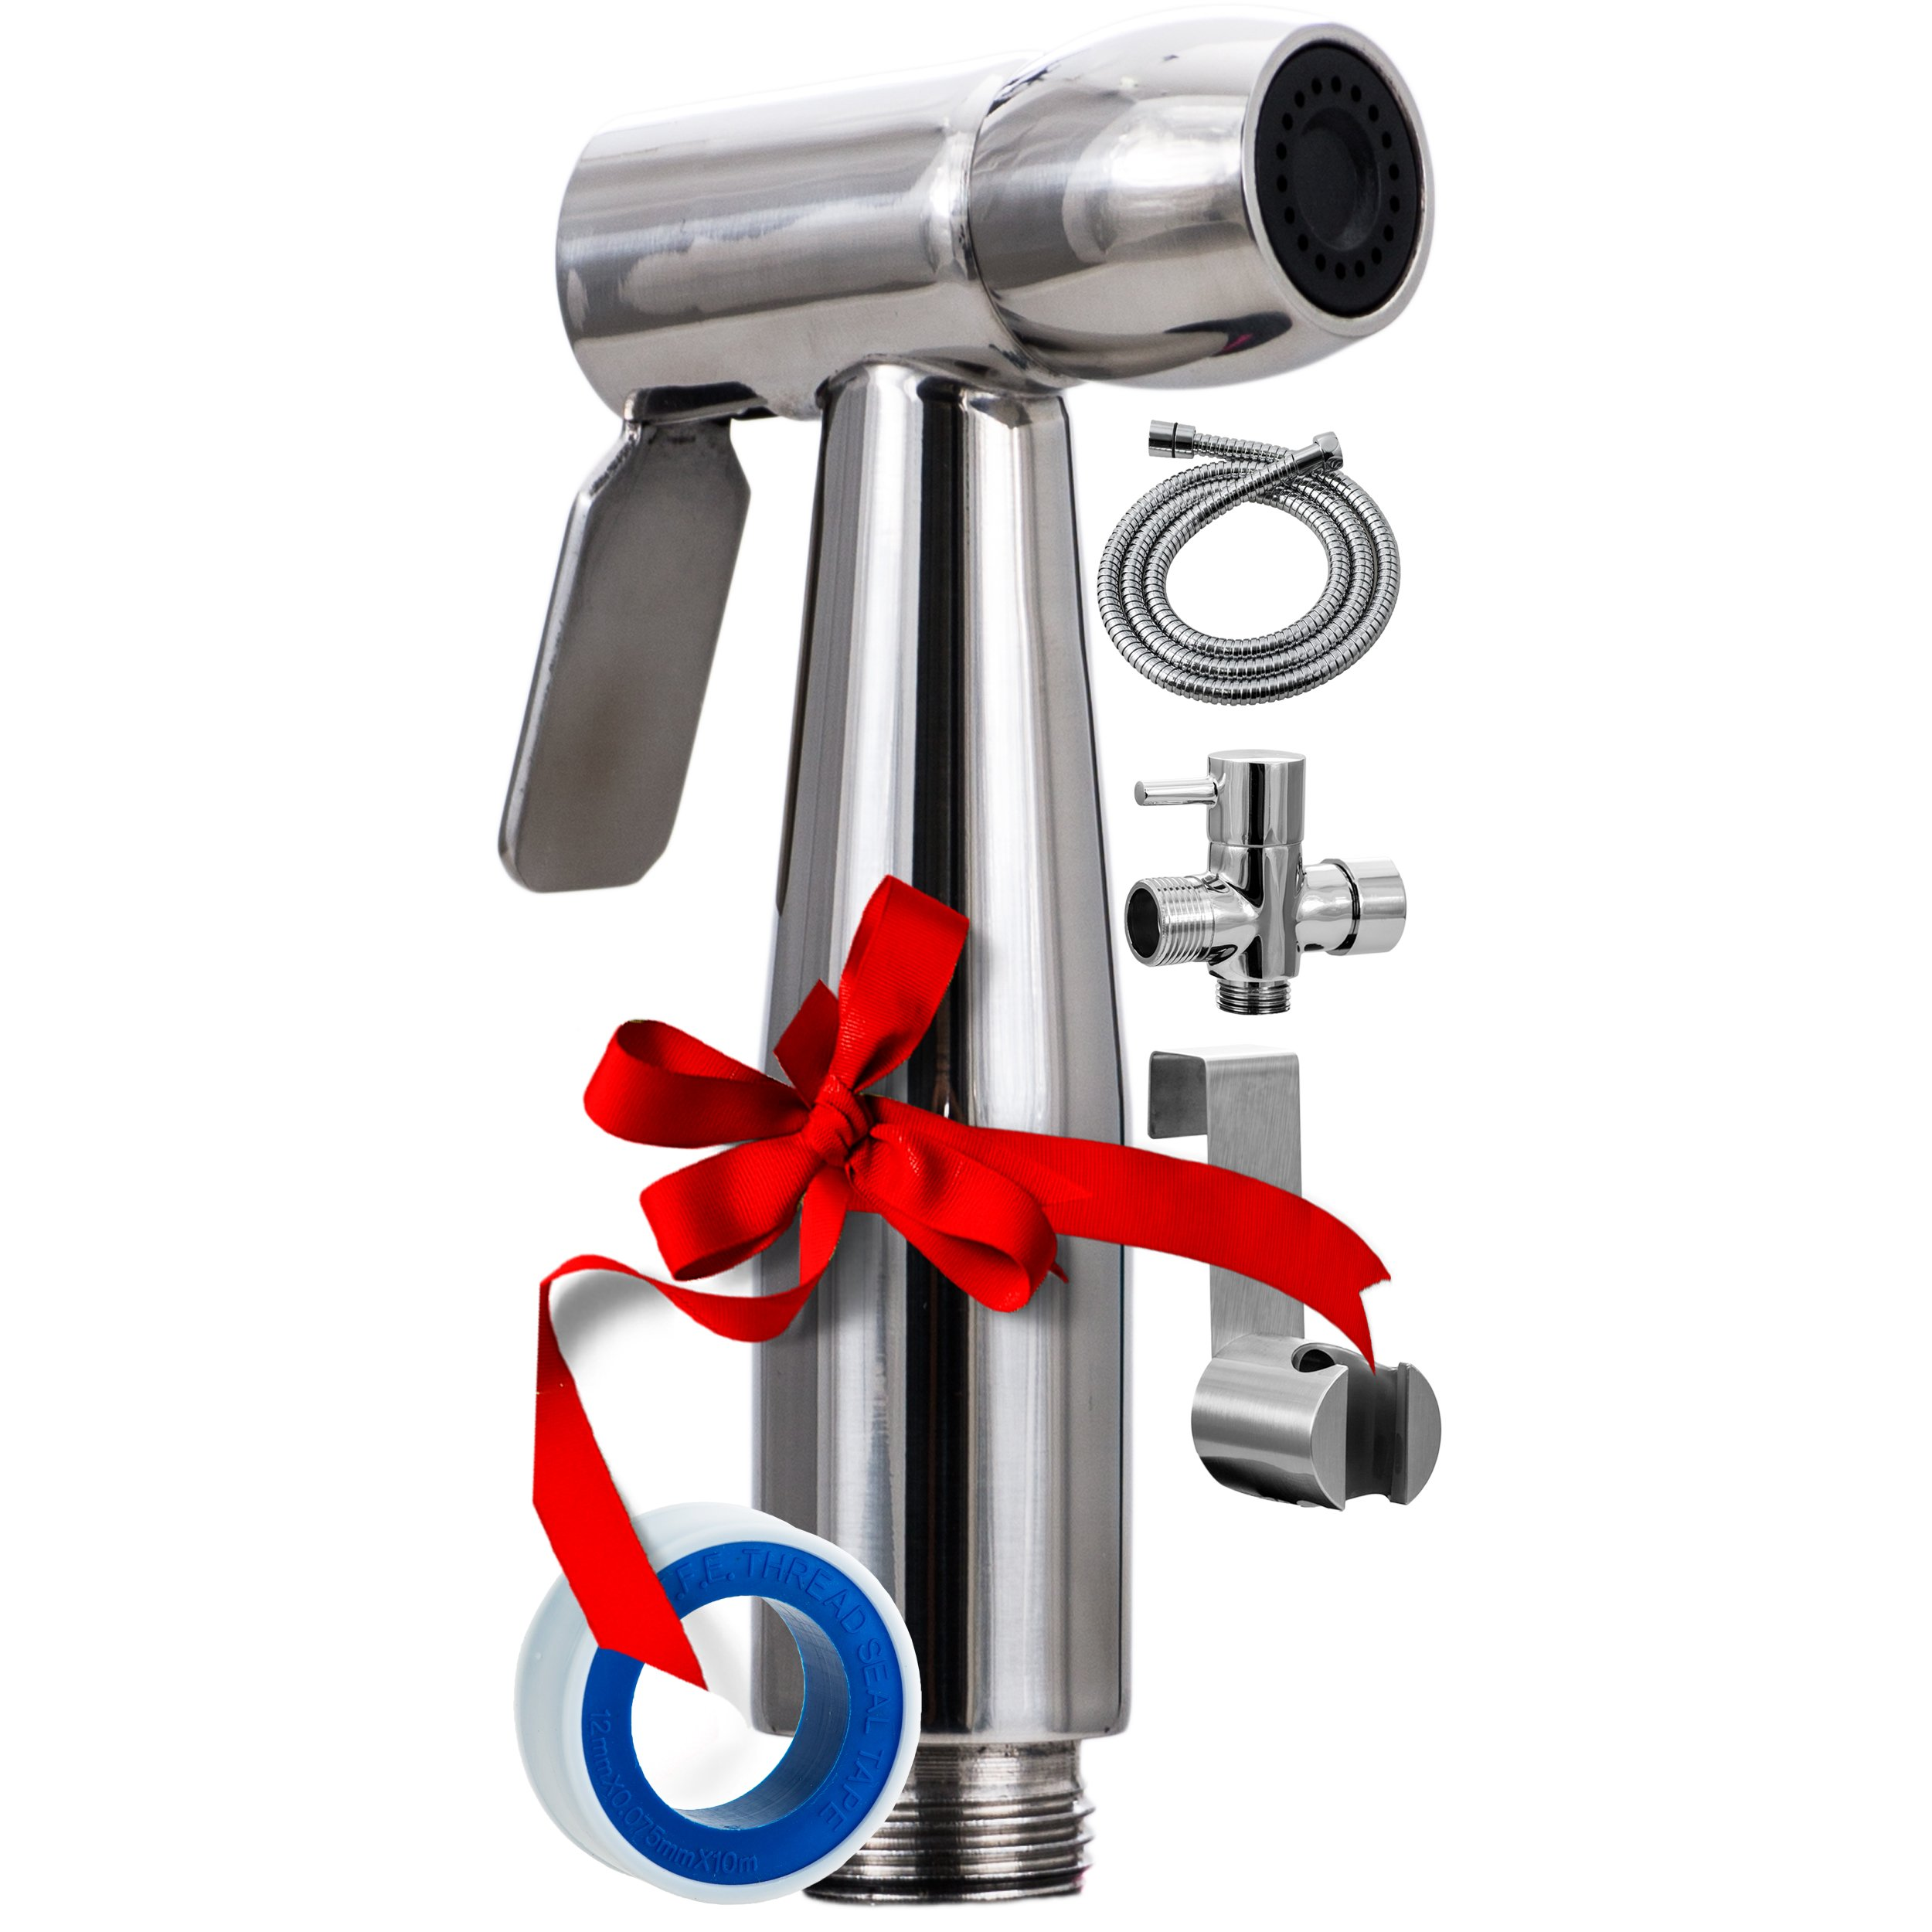 Buy Luxury Handheld Bidet Sprayer Cloth Diaper Baby Water Shattaf Personal Hygiene Shower Spray Attachment 59 Hose High Pressure No Leaks Stainless Steel Brushed Chrome Washer Set For Toilet Bidets In Cheap Price On Alibaba Com